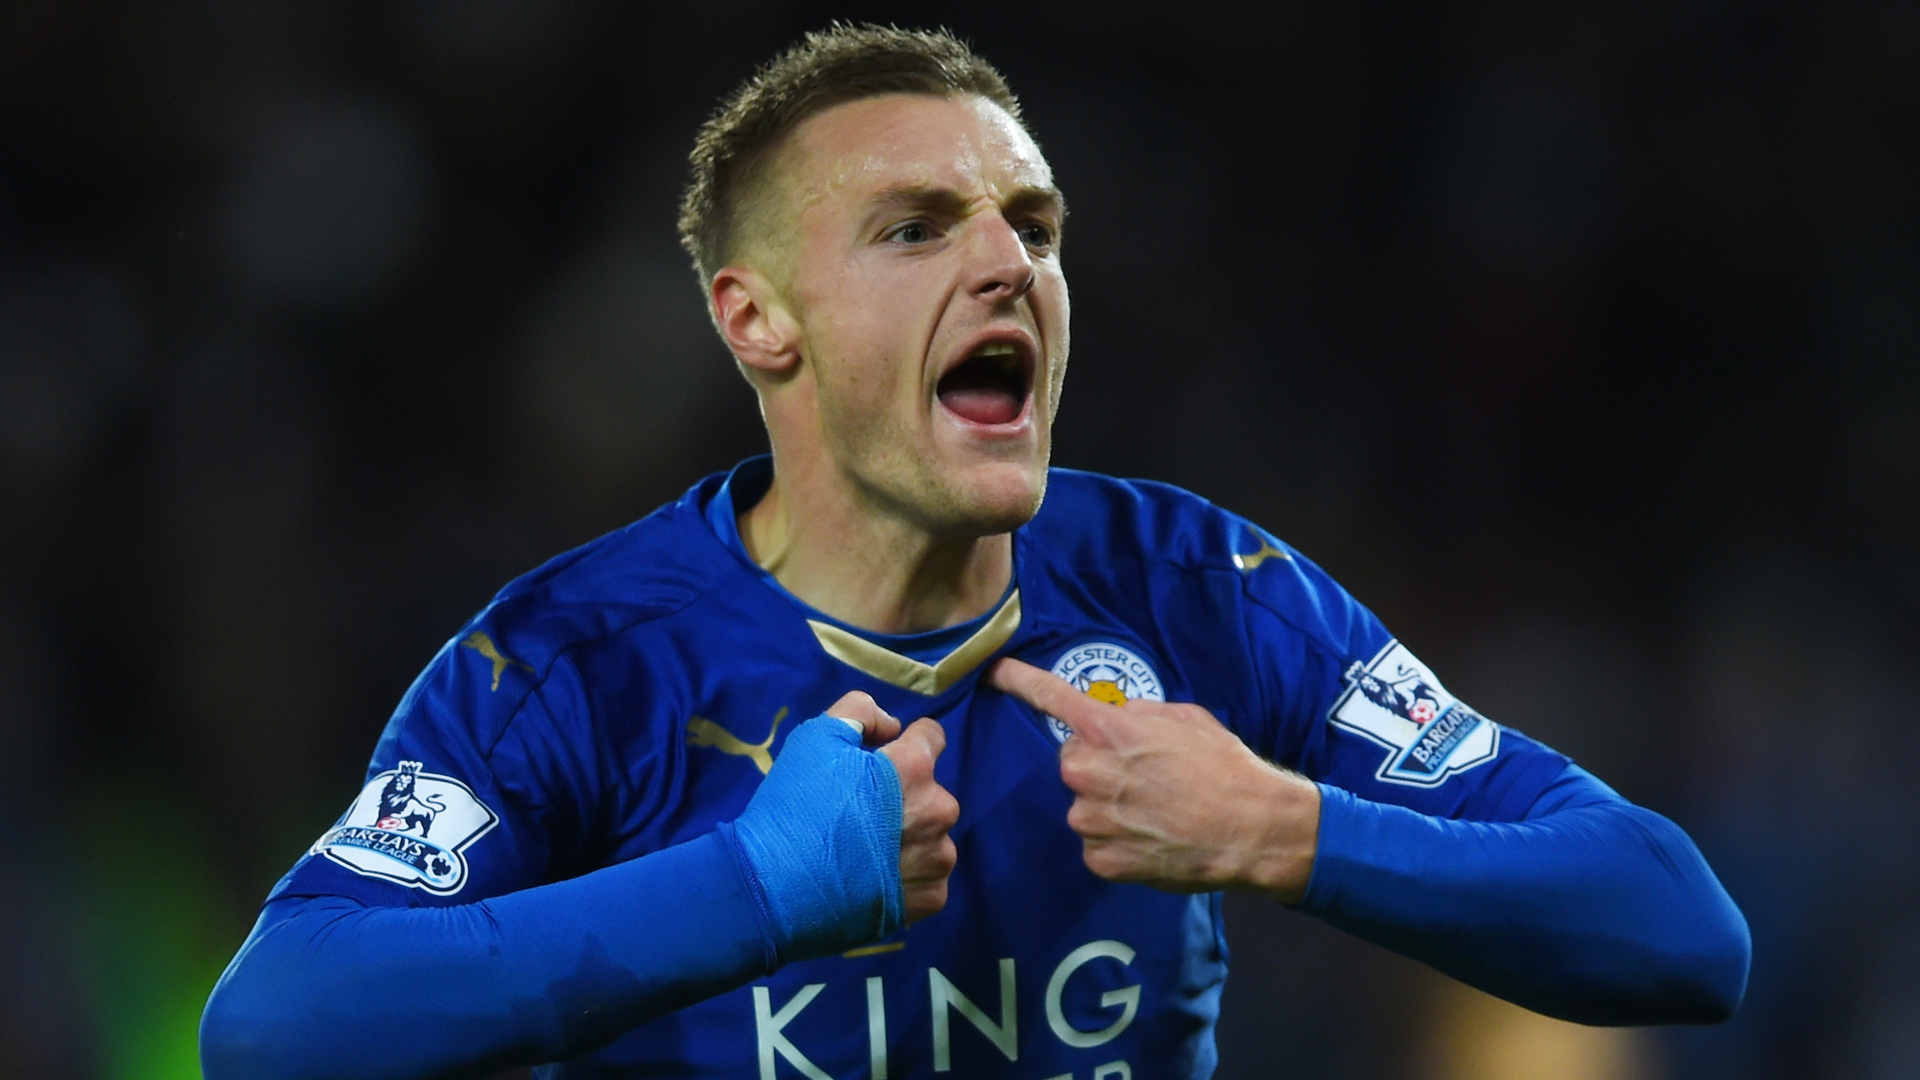 Jamie Vardy of Leicester City celebrates scoring his team's first goal during the Barclays Premier League match between Leicester City and Manchester United